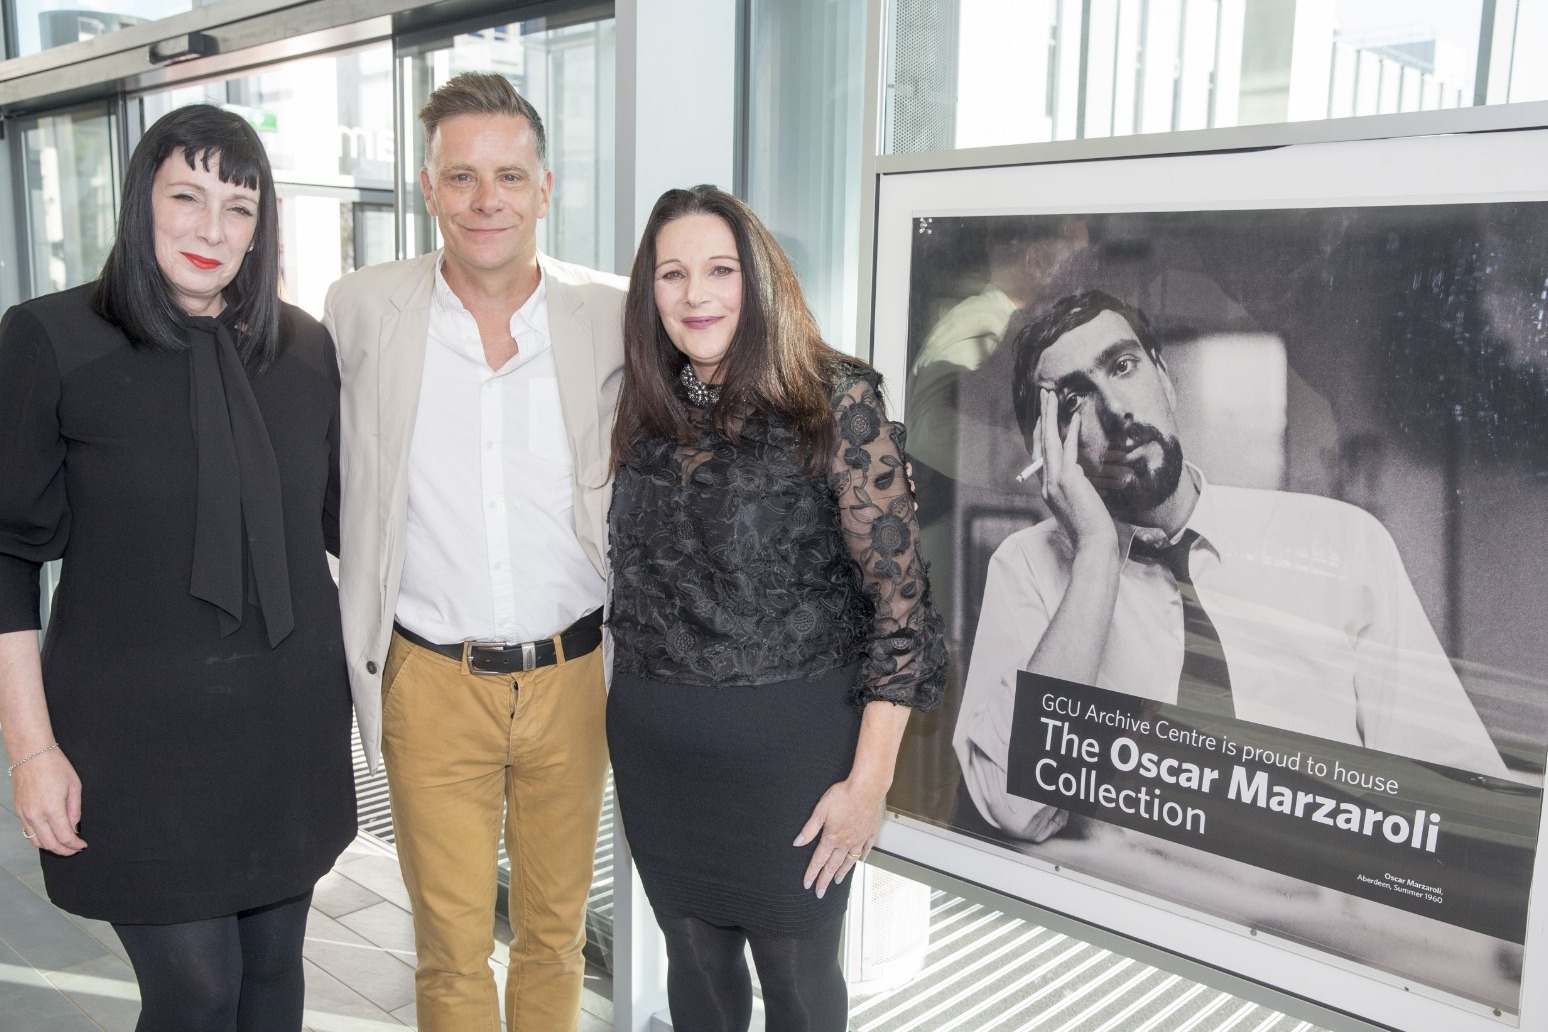 Deacon Blue star Ricky Ross recognised with honorary degree